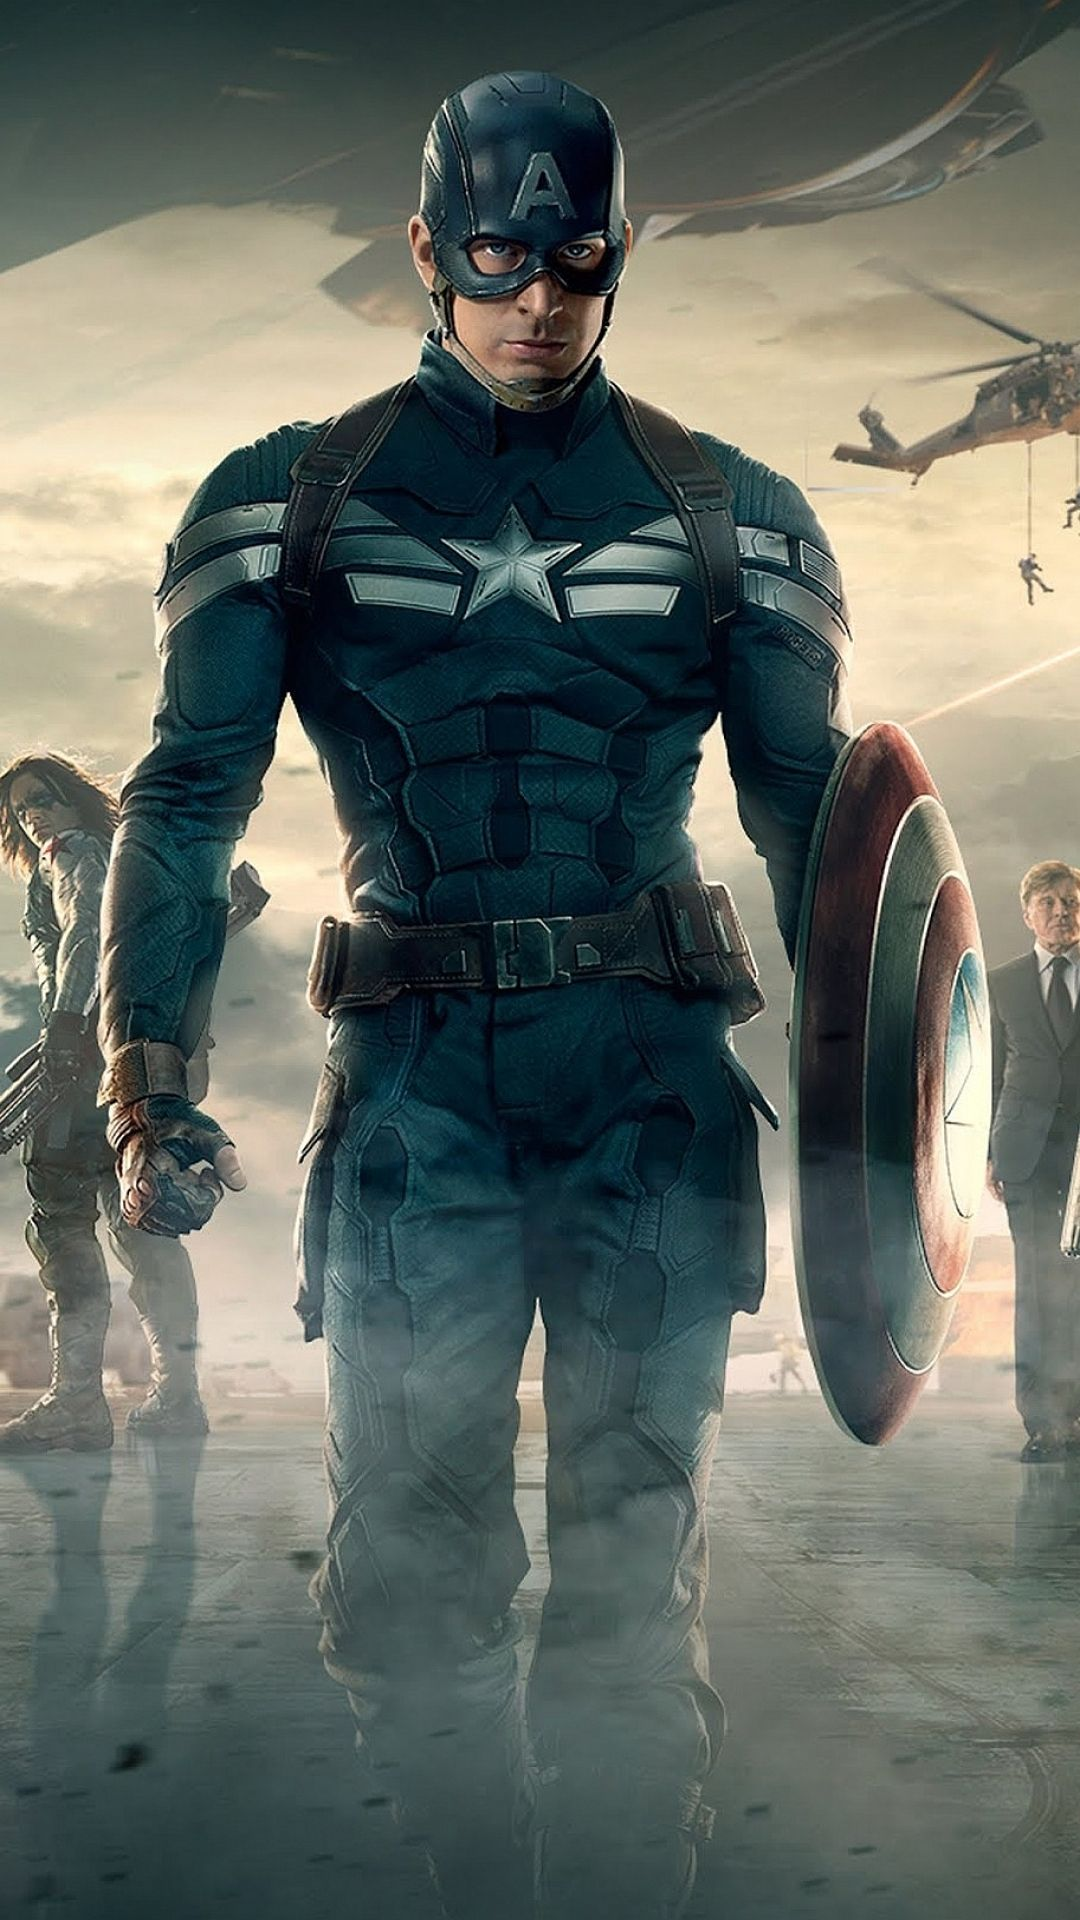 Captain America The Winter Soldier Hd Wallpapers And Desktop Captain America Wallpaper Captain America Marvel Movies